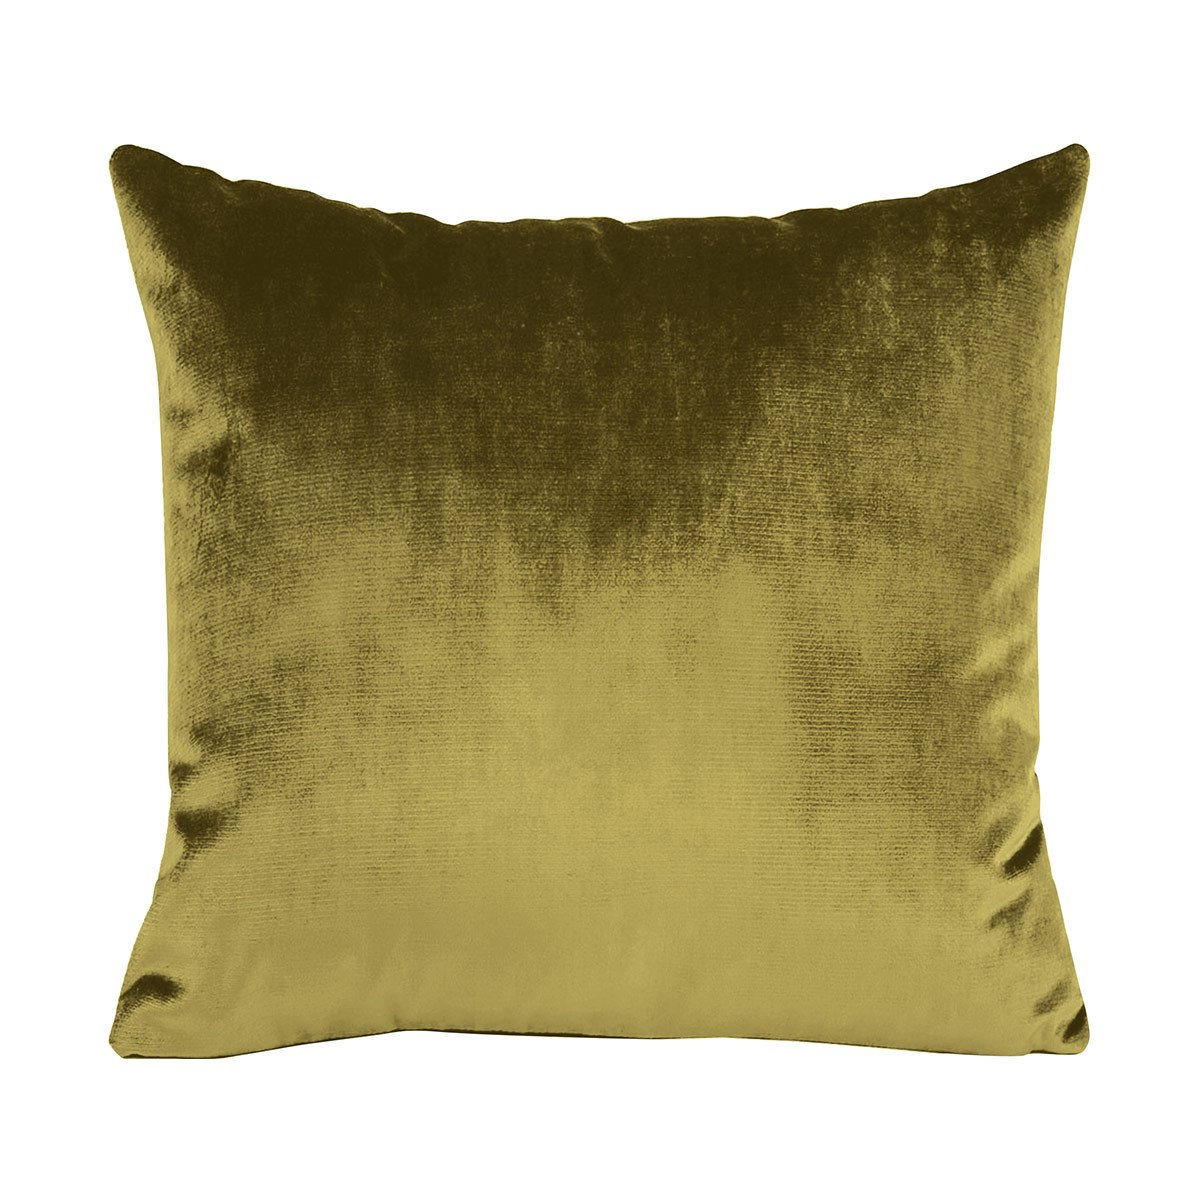 Berlingot Decorative Pillow Square